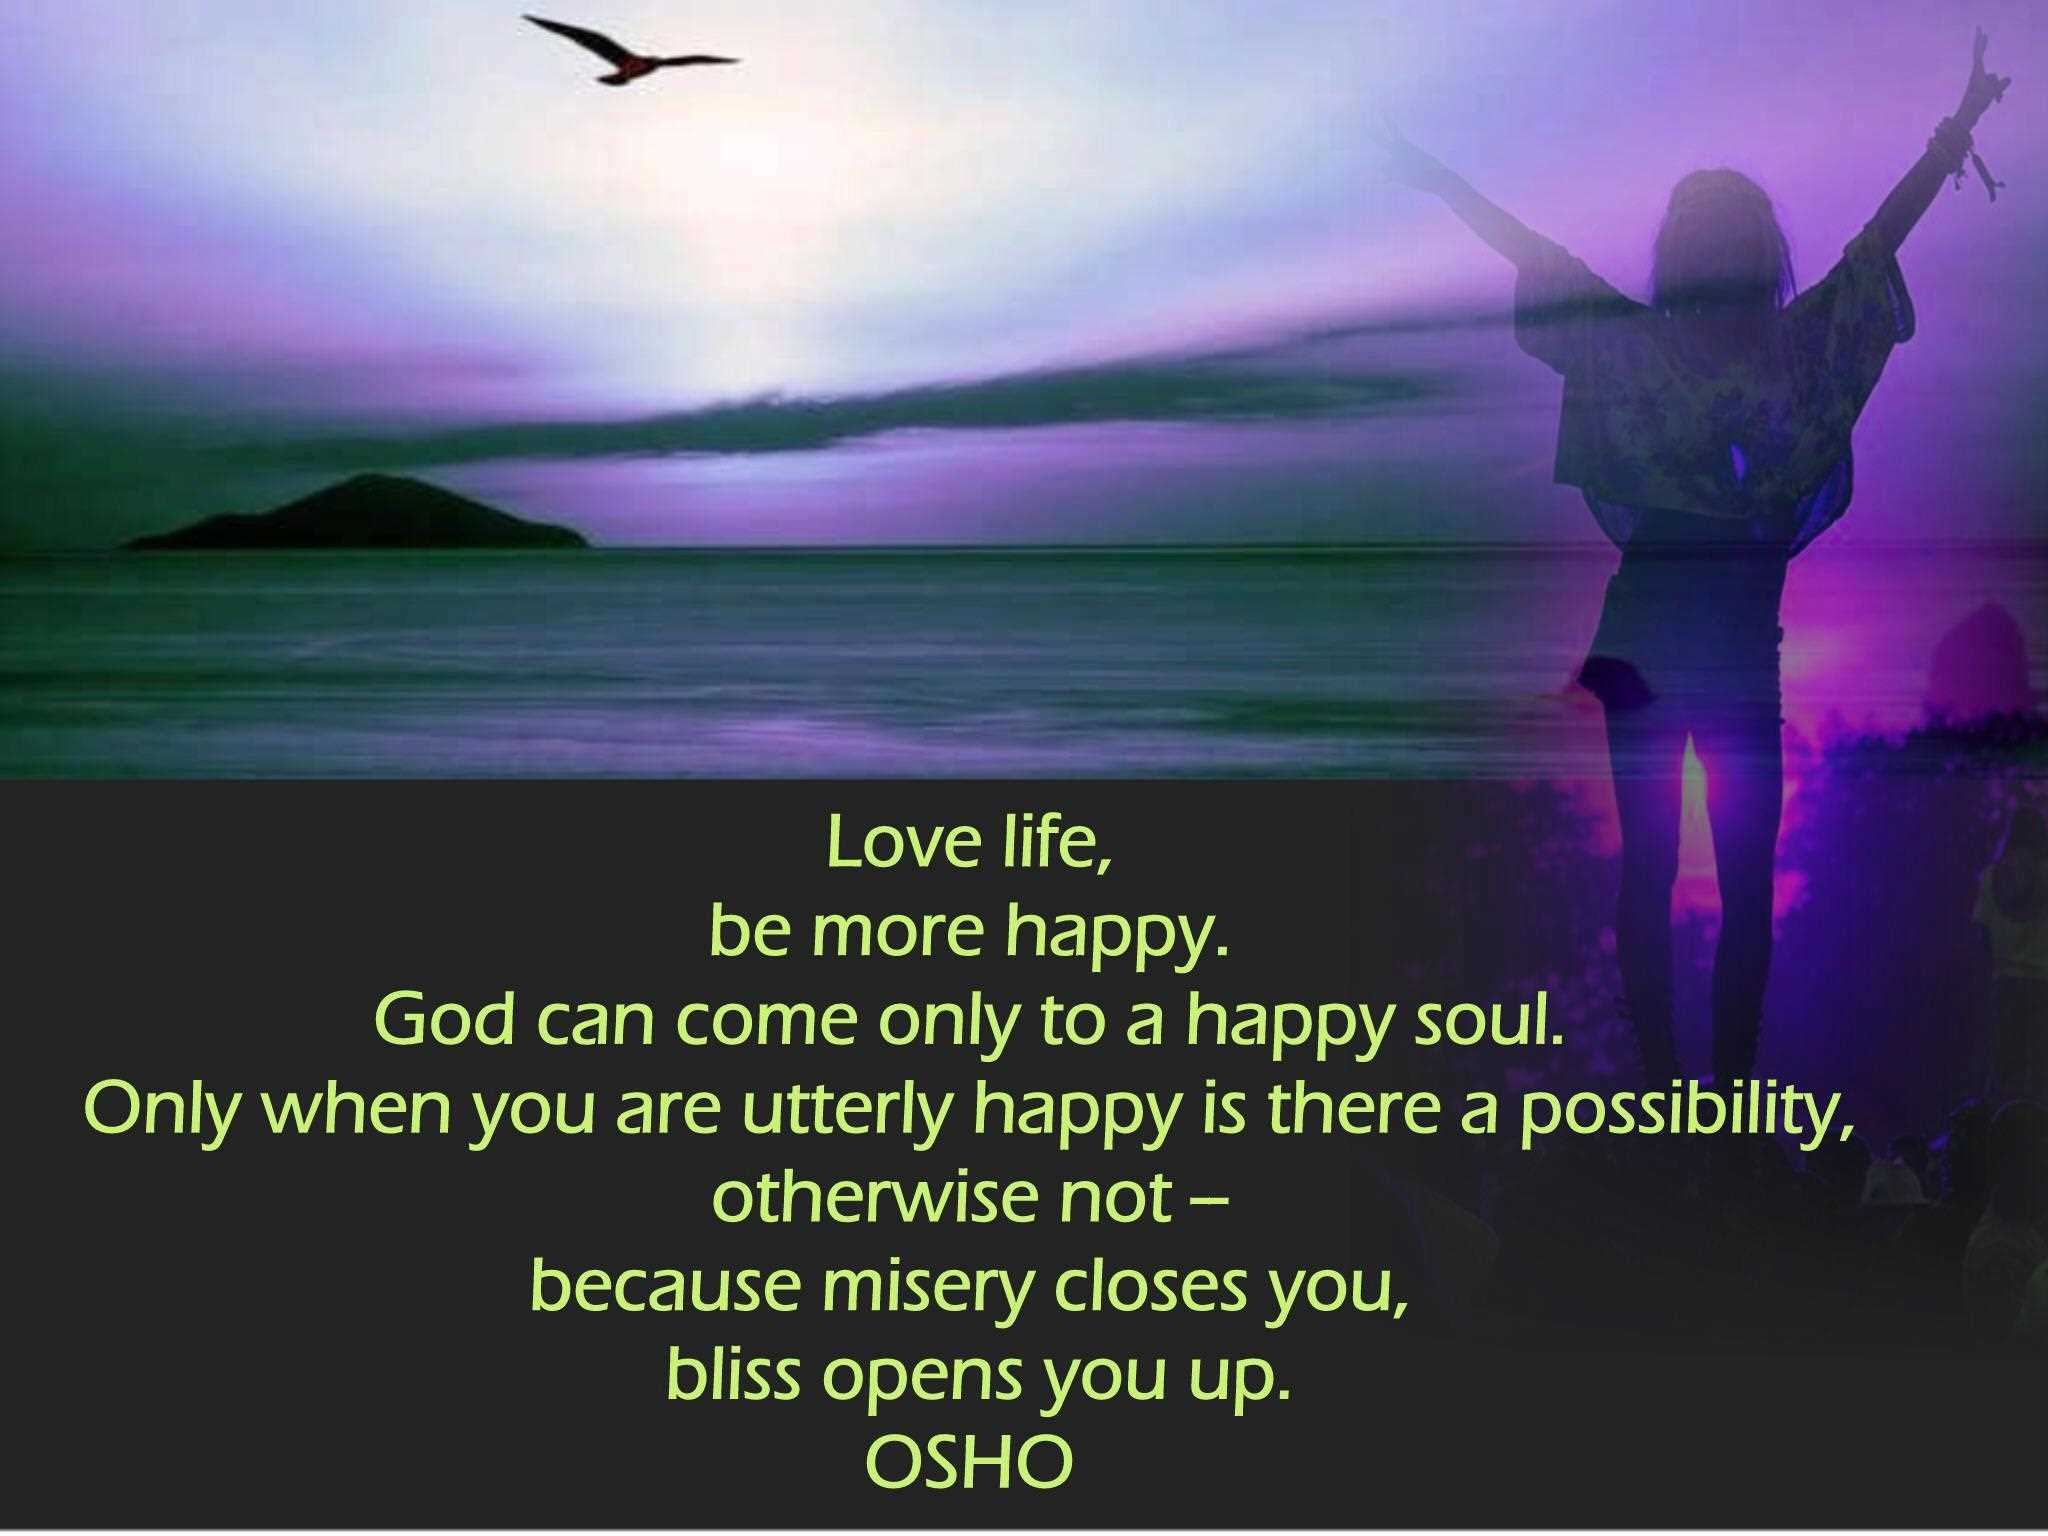 Osho Quotes About Love. QuotesGram